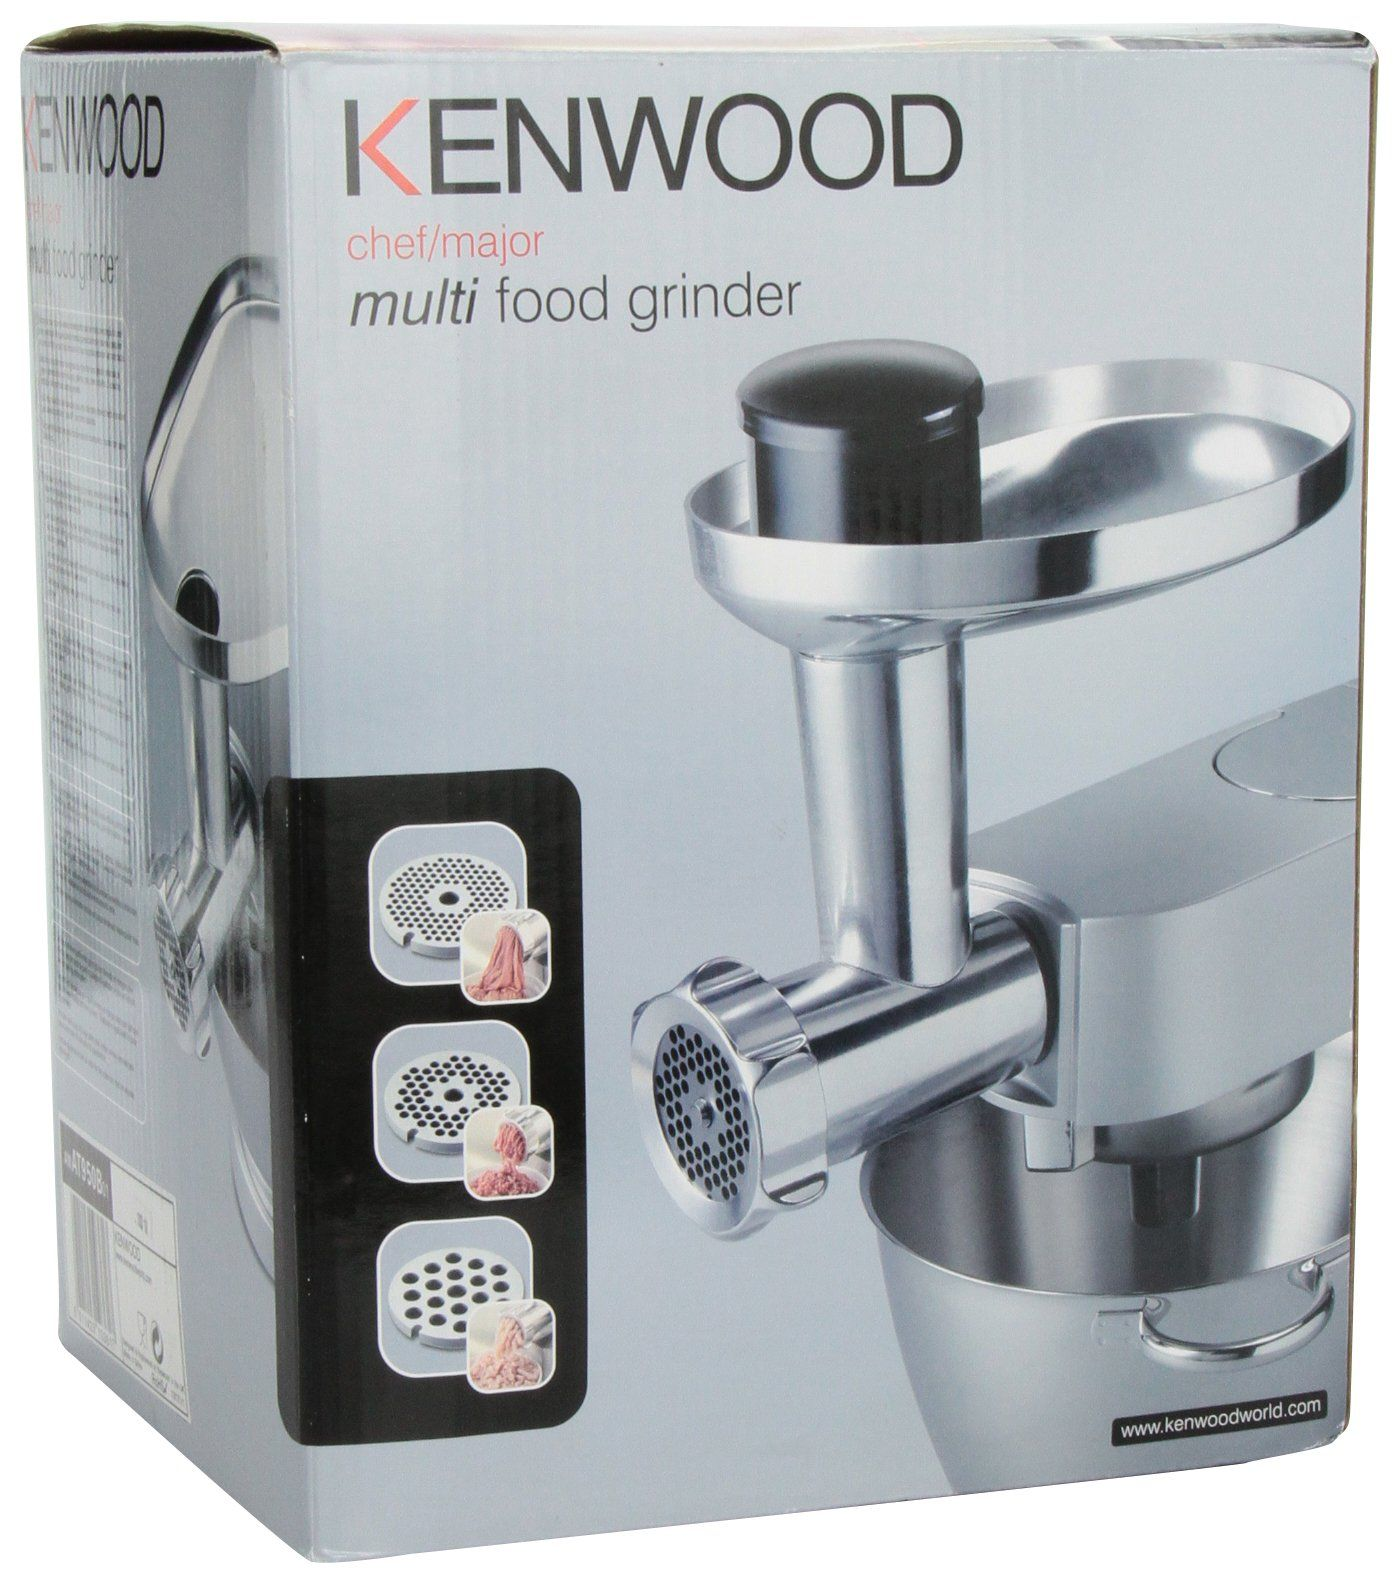 Kenwood Mincer and Food Grinder Attachment AT950 for